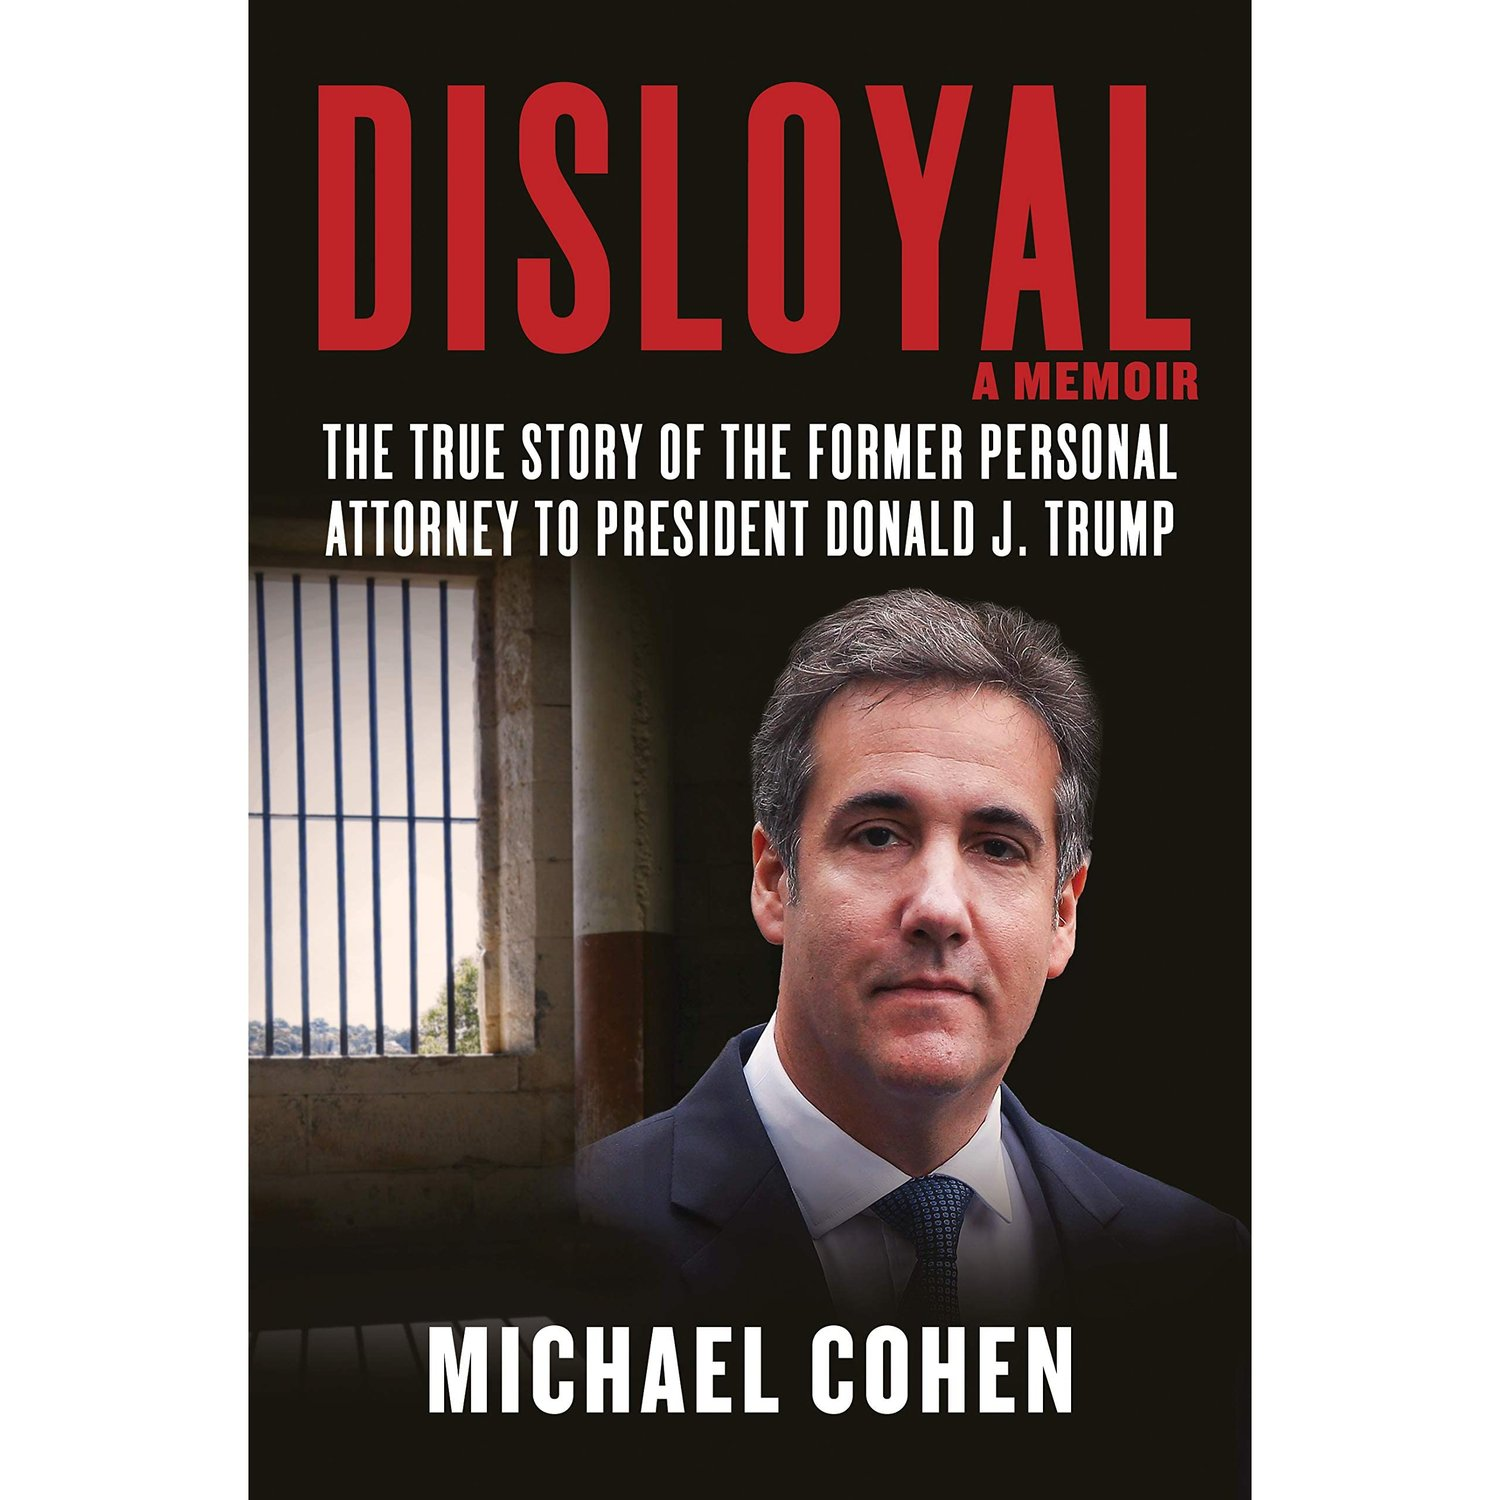 Michael Cohen's memoir begs the question: When a Trump loyalist blows the whistle, will anyone listen?